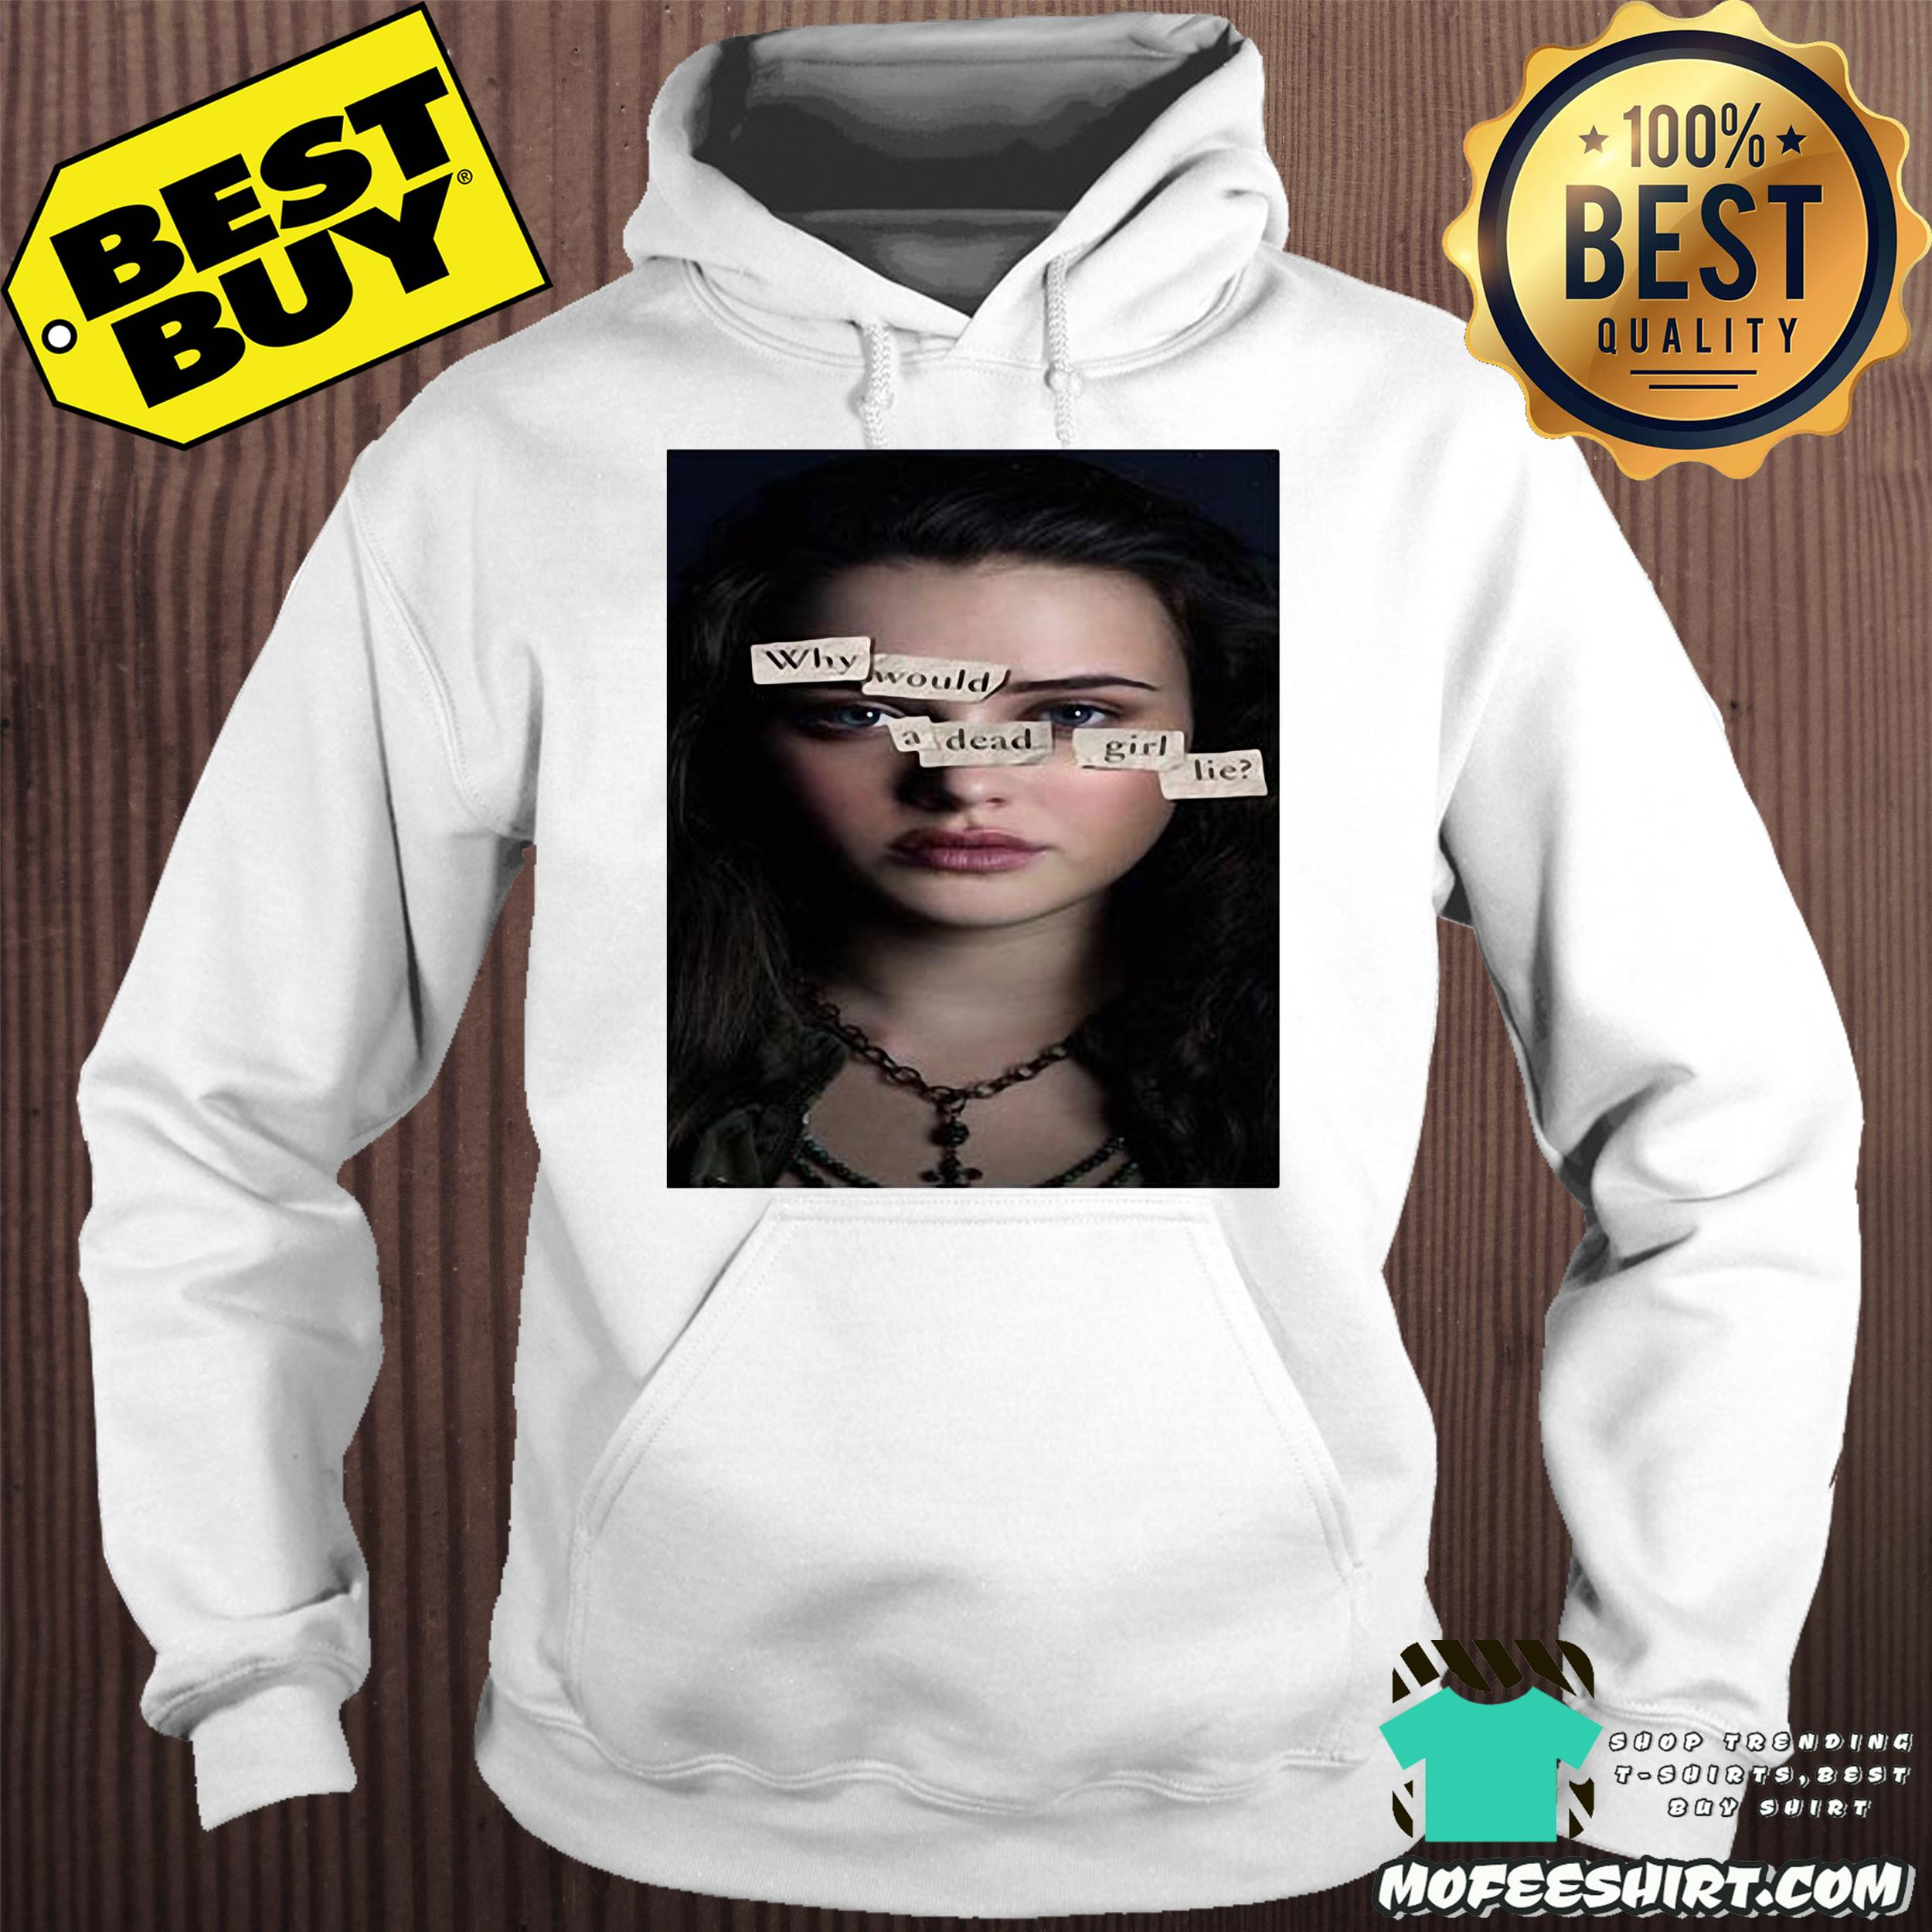 13 reasons why would a dead girl lie hoodie - 13 reasons why would a dead girl lie shirt